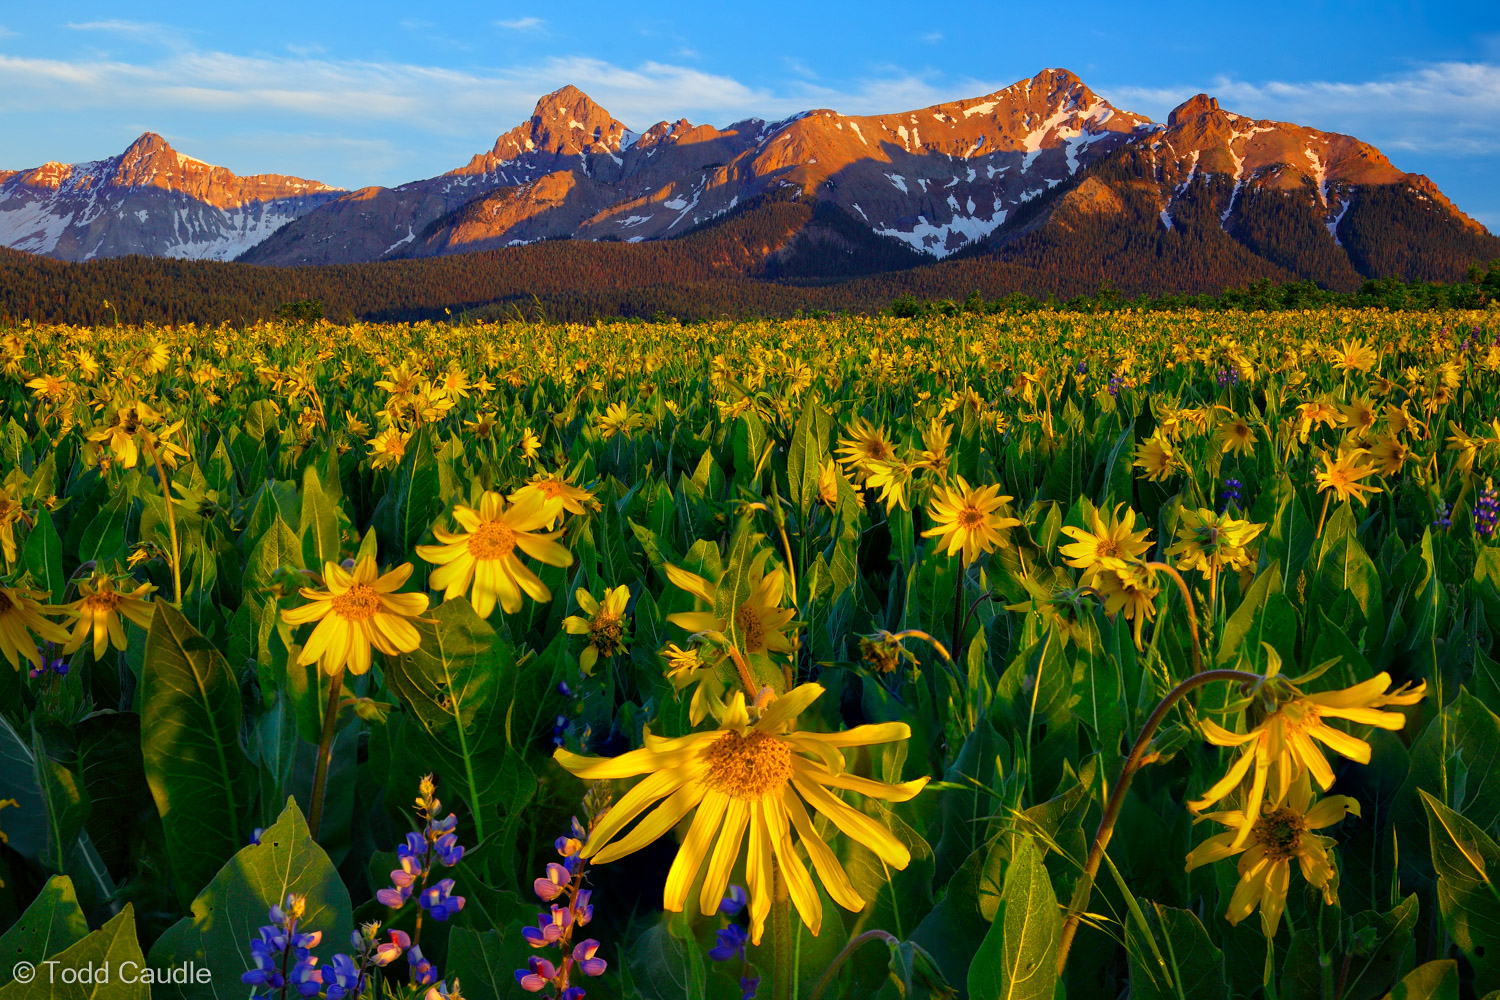 Mules ears wildflowers grow in profusion below the Sneffels Range in early-summer. In this scene, the setting sun paints the...